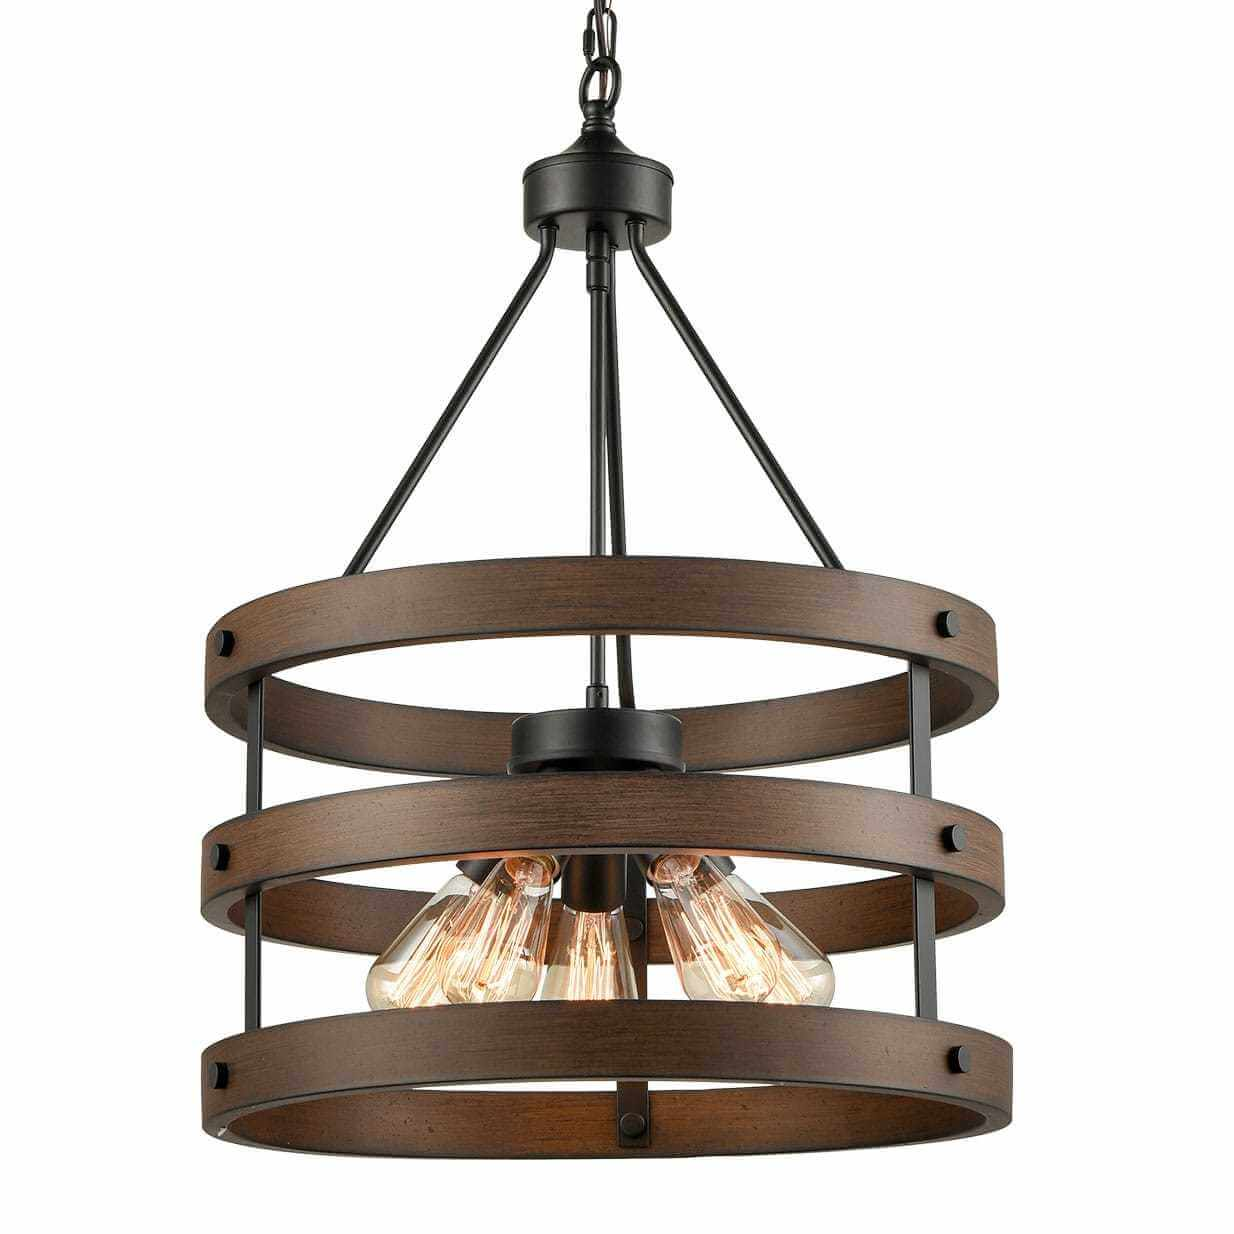 Rustic Wood Accent Circular Drum Chandeliers Vintage Large Pendant Light